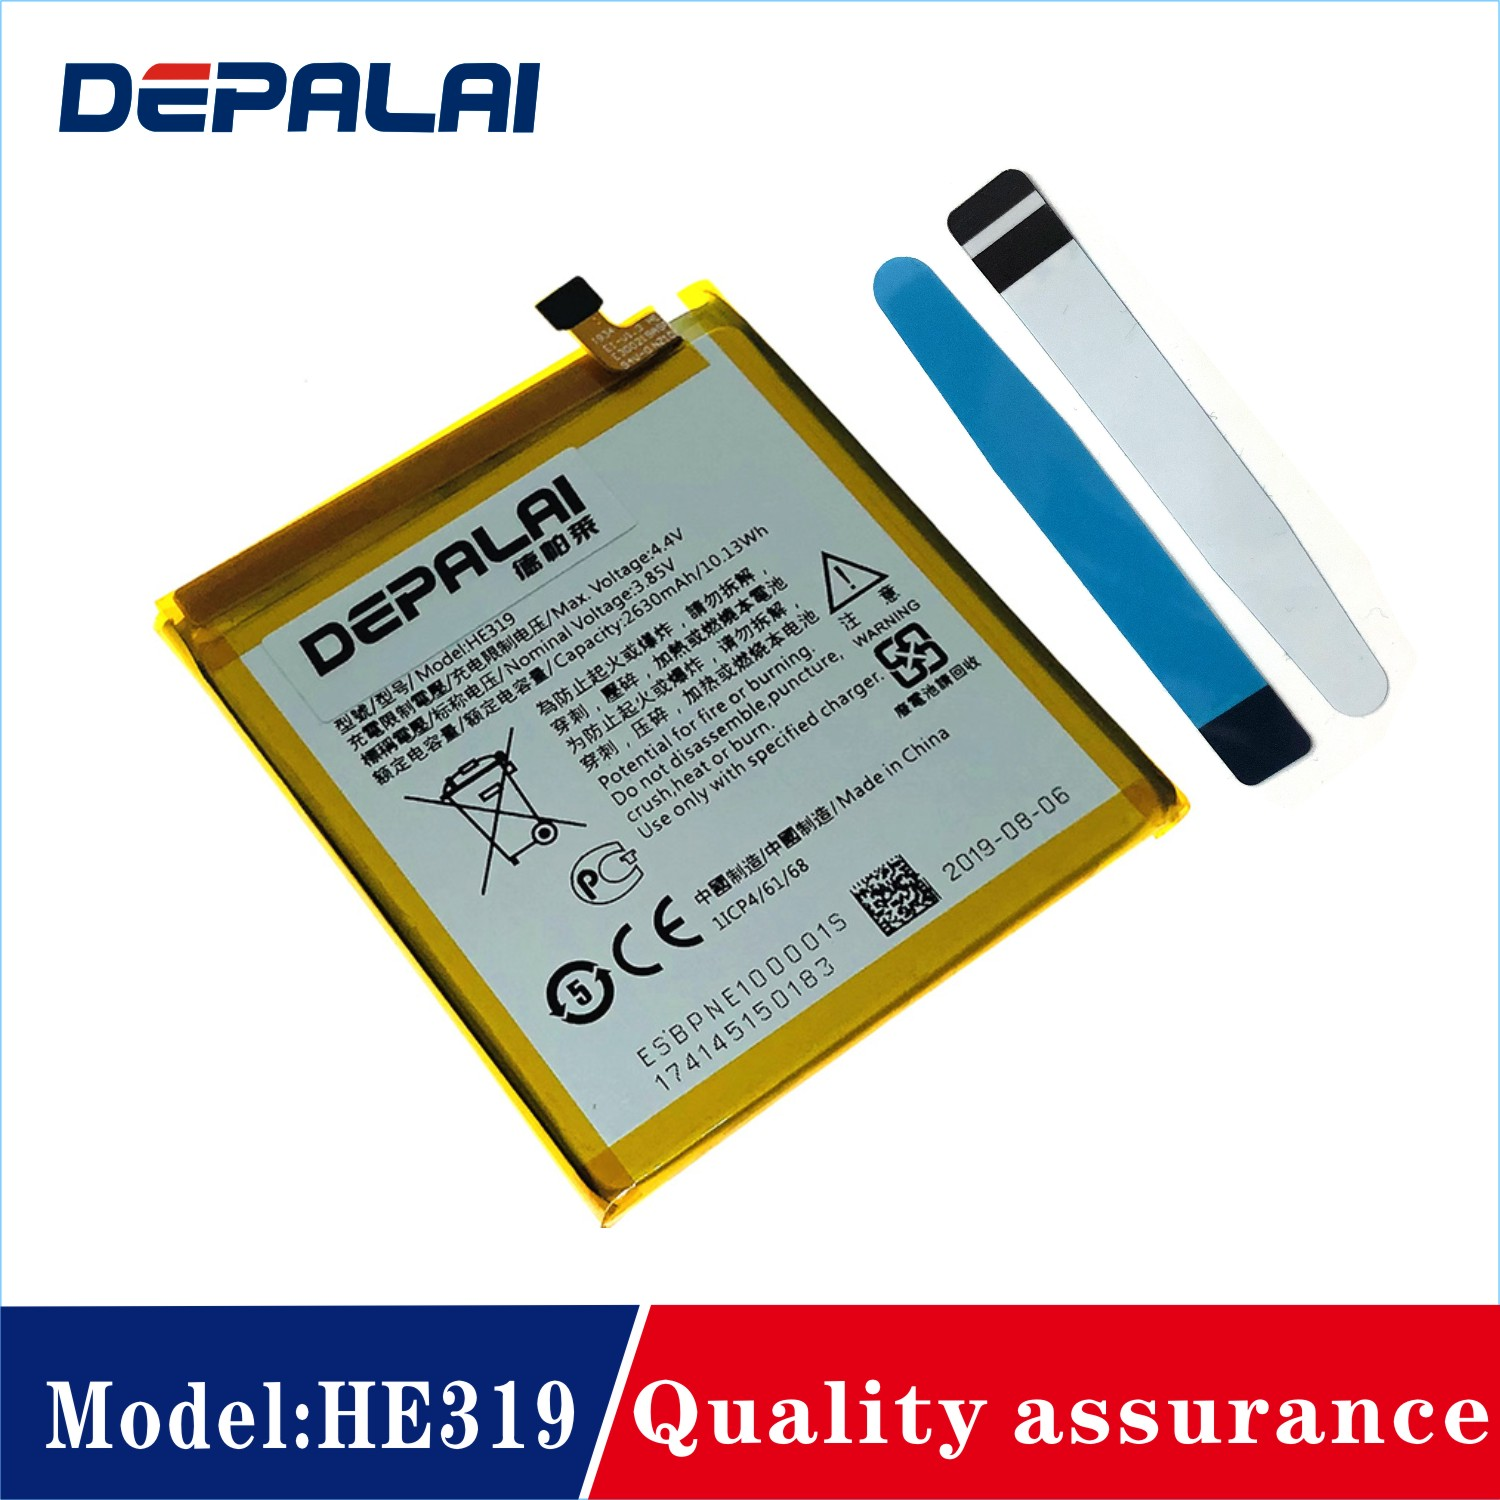 2630mAh 10.13Wh HE319 Phone Replacement Battery For <font><b>Nokia</b></font> <font><b>3</b></font> TA-1020 1038 <font><b>1028</b></font> 1032 Batteries image